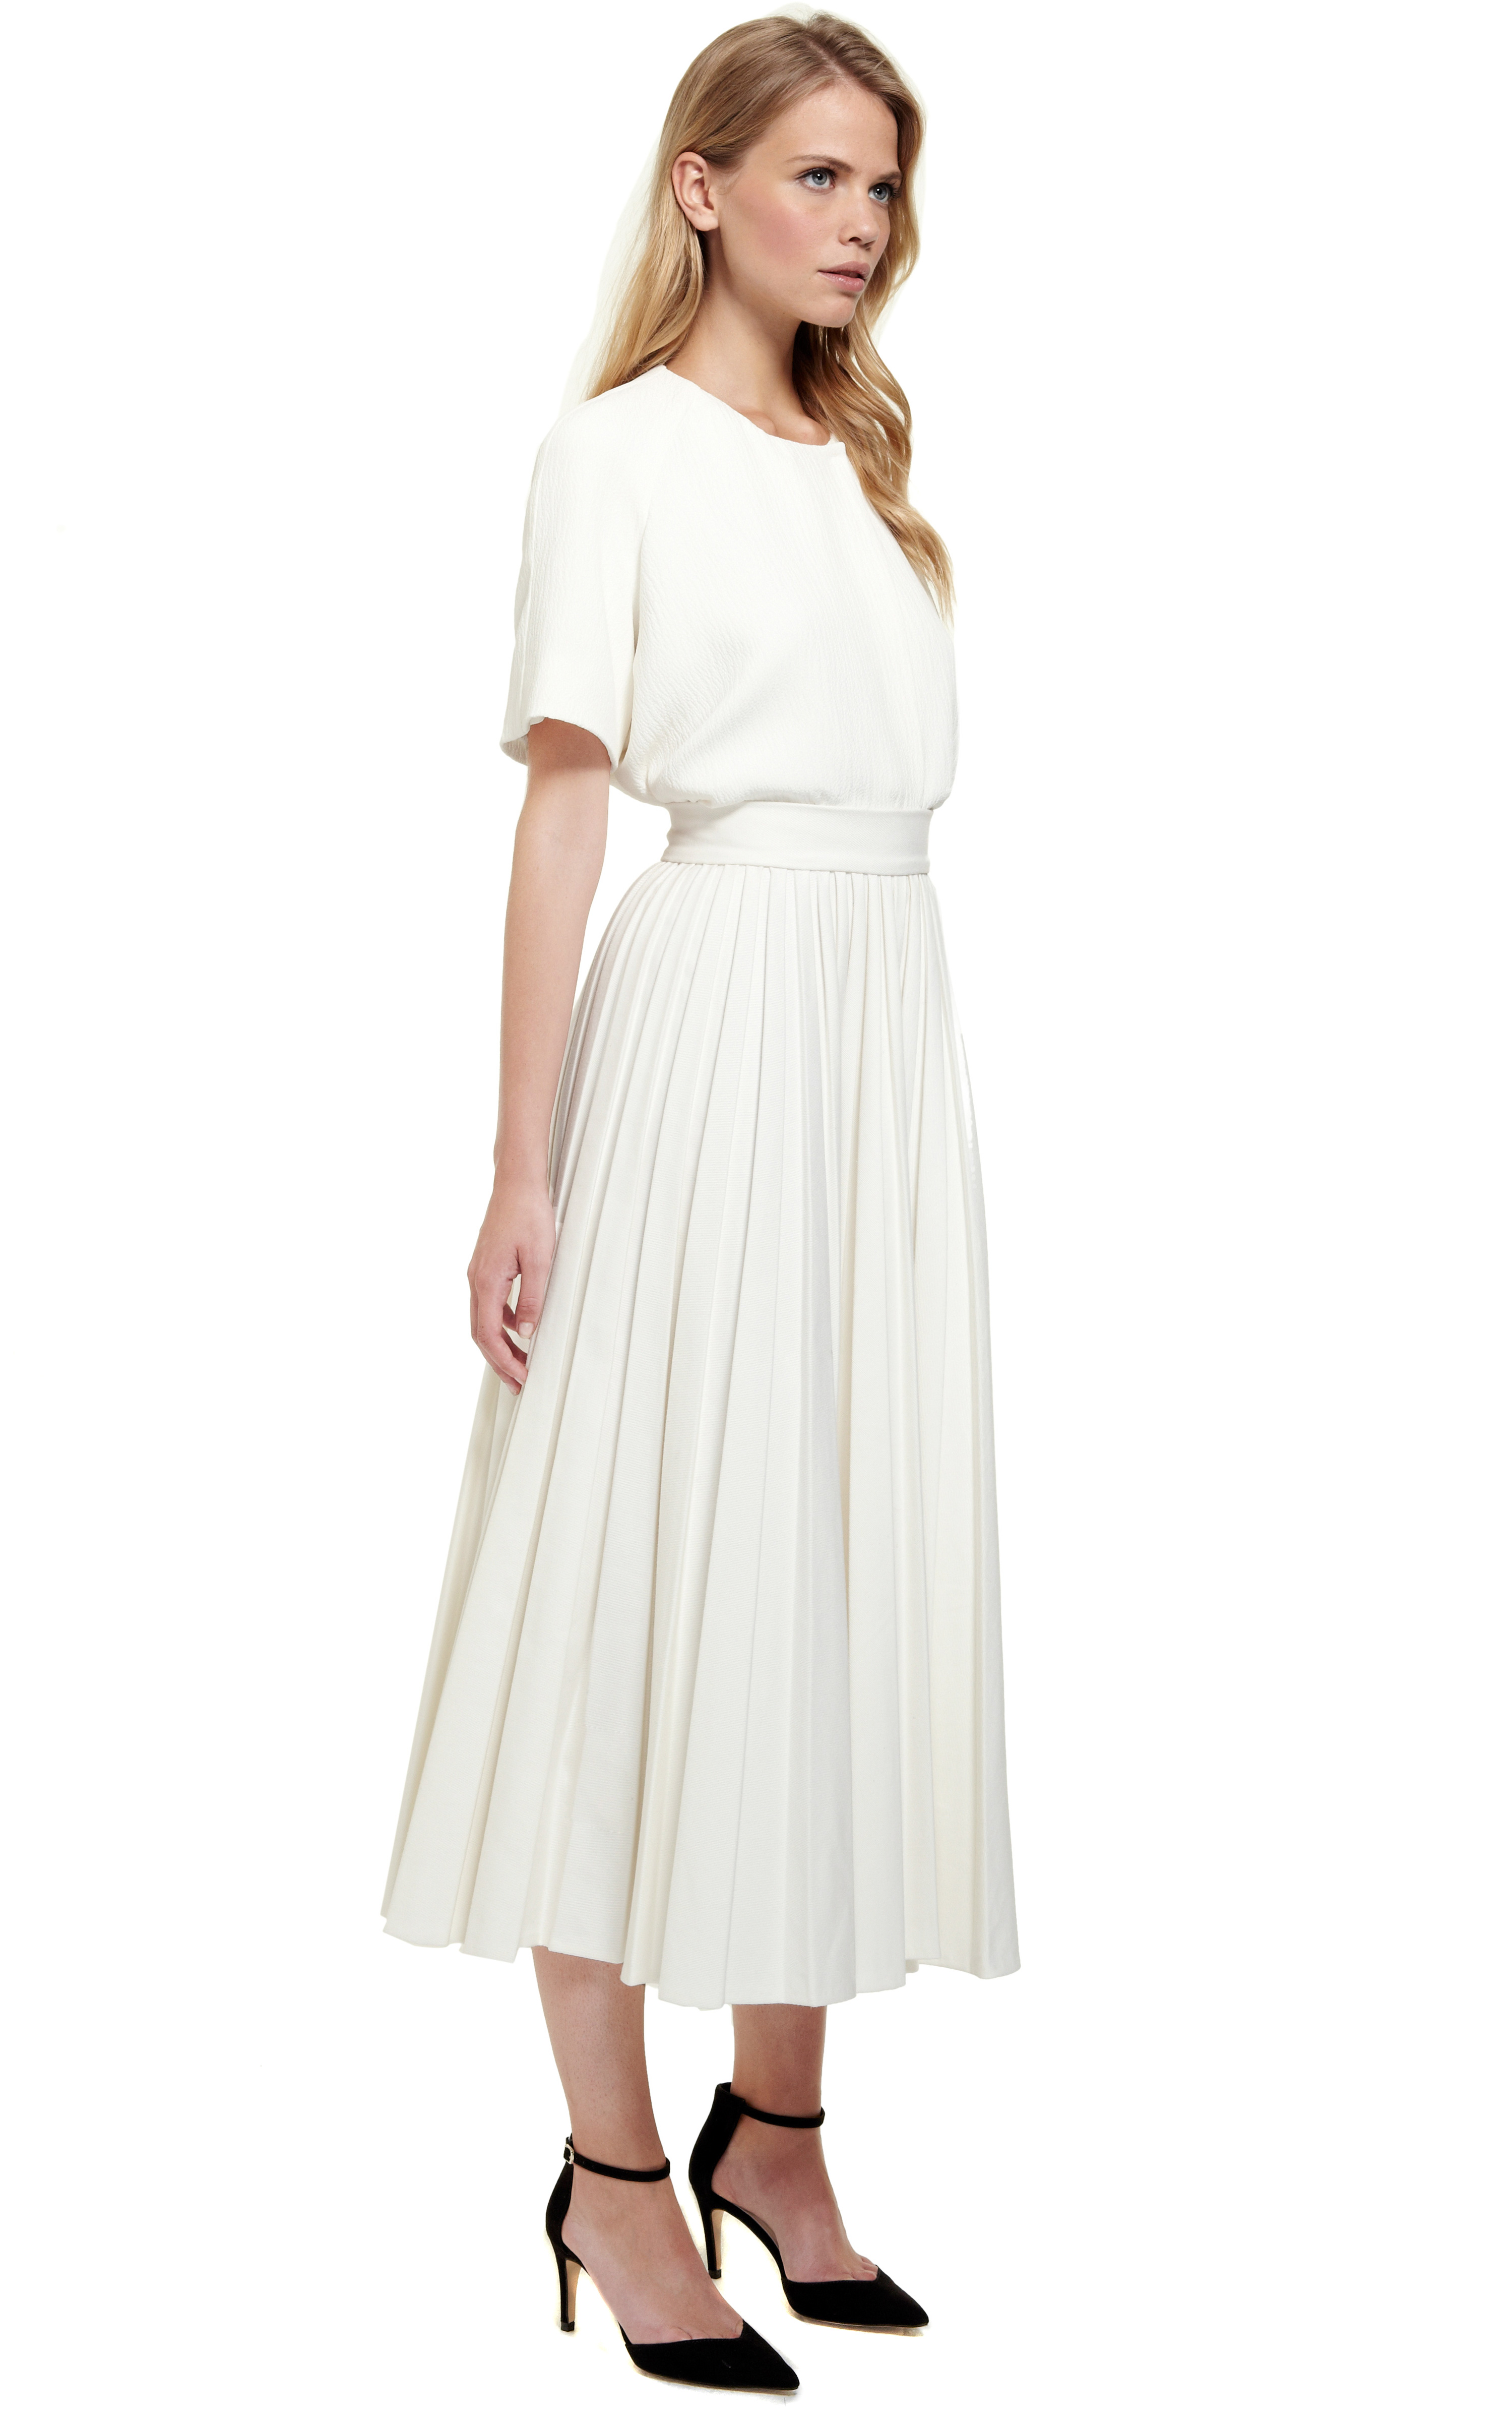 Emilia Wickstead Pleated Skirt In White Lyst